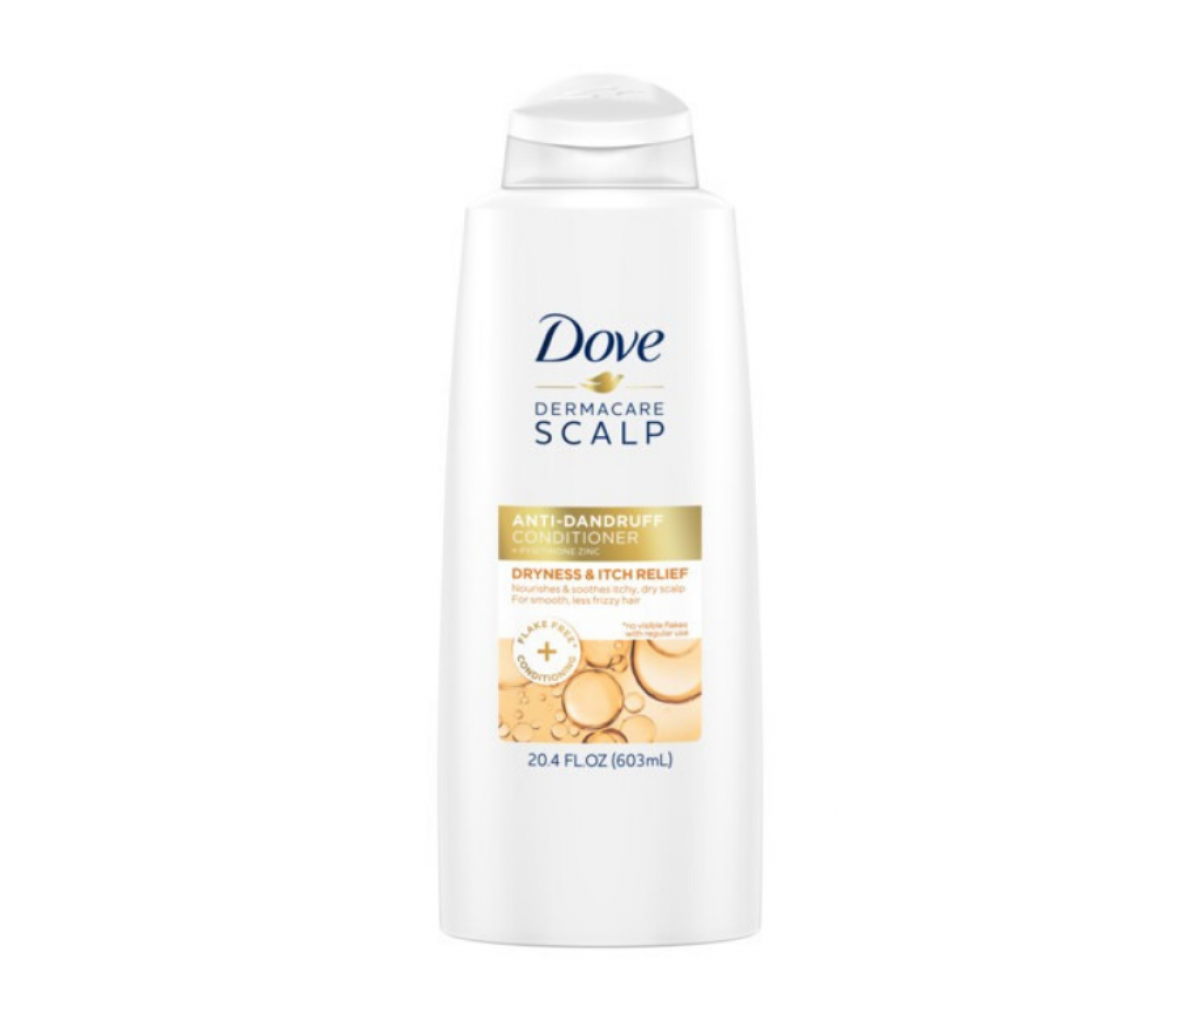 Dove 20.4oz Dryness &Itch Relief Conditioner